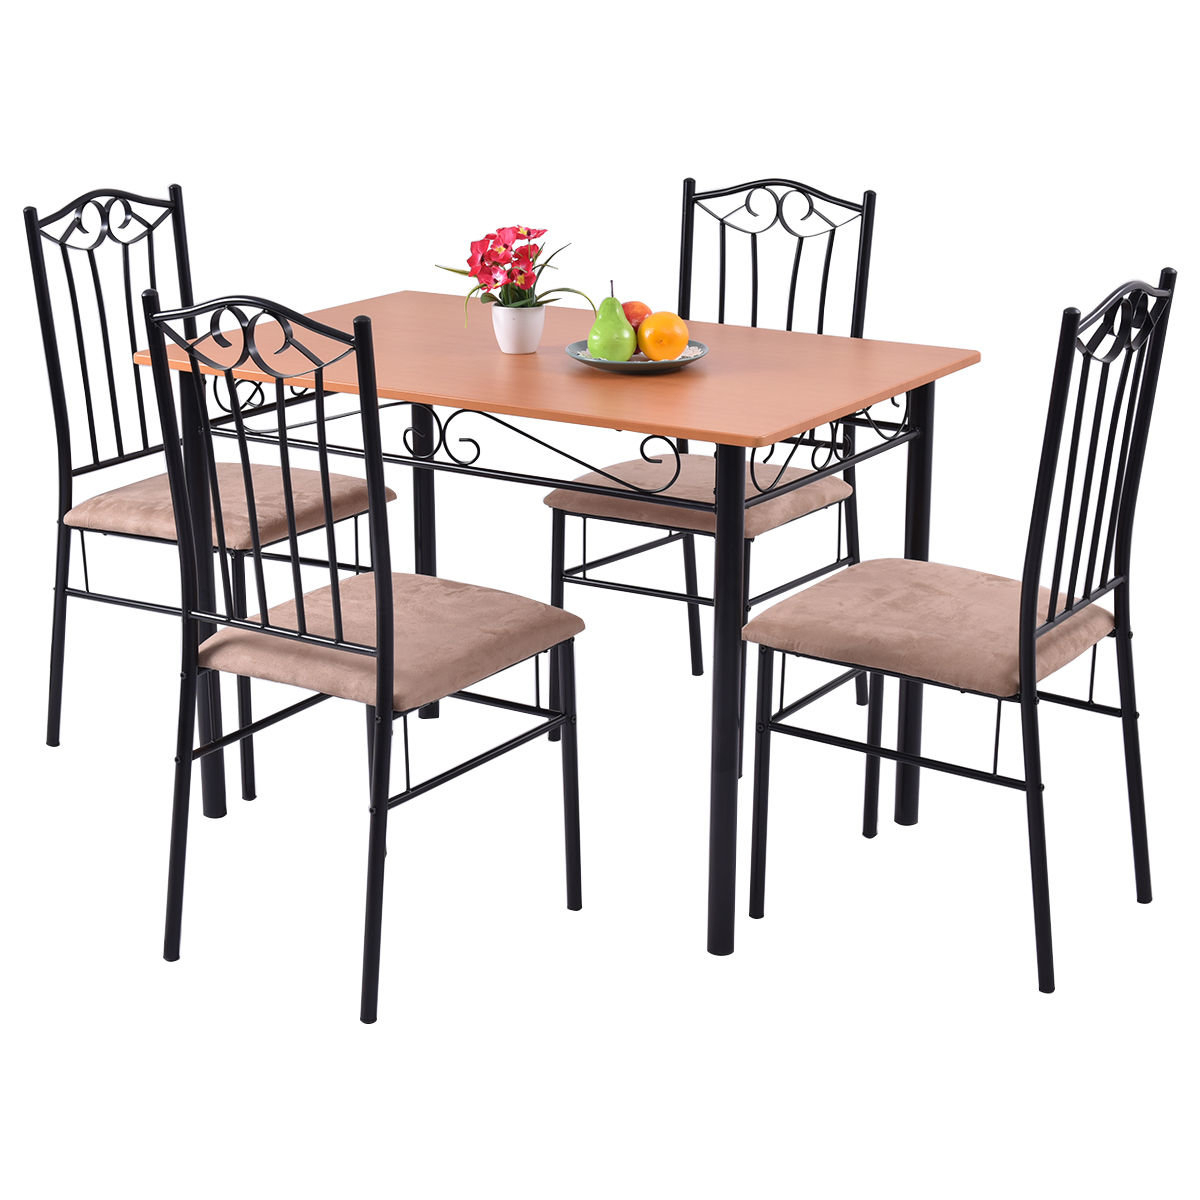 Rossi 5 Piece Dining Set Pertaining To Most Up To Date Ganya 5 Piece Dining Sets (Photo 9 of 20)